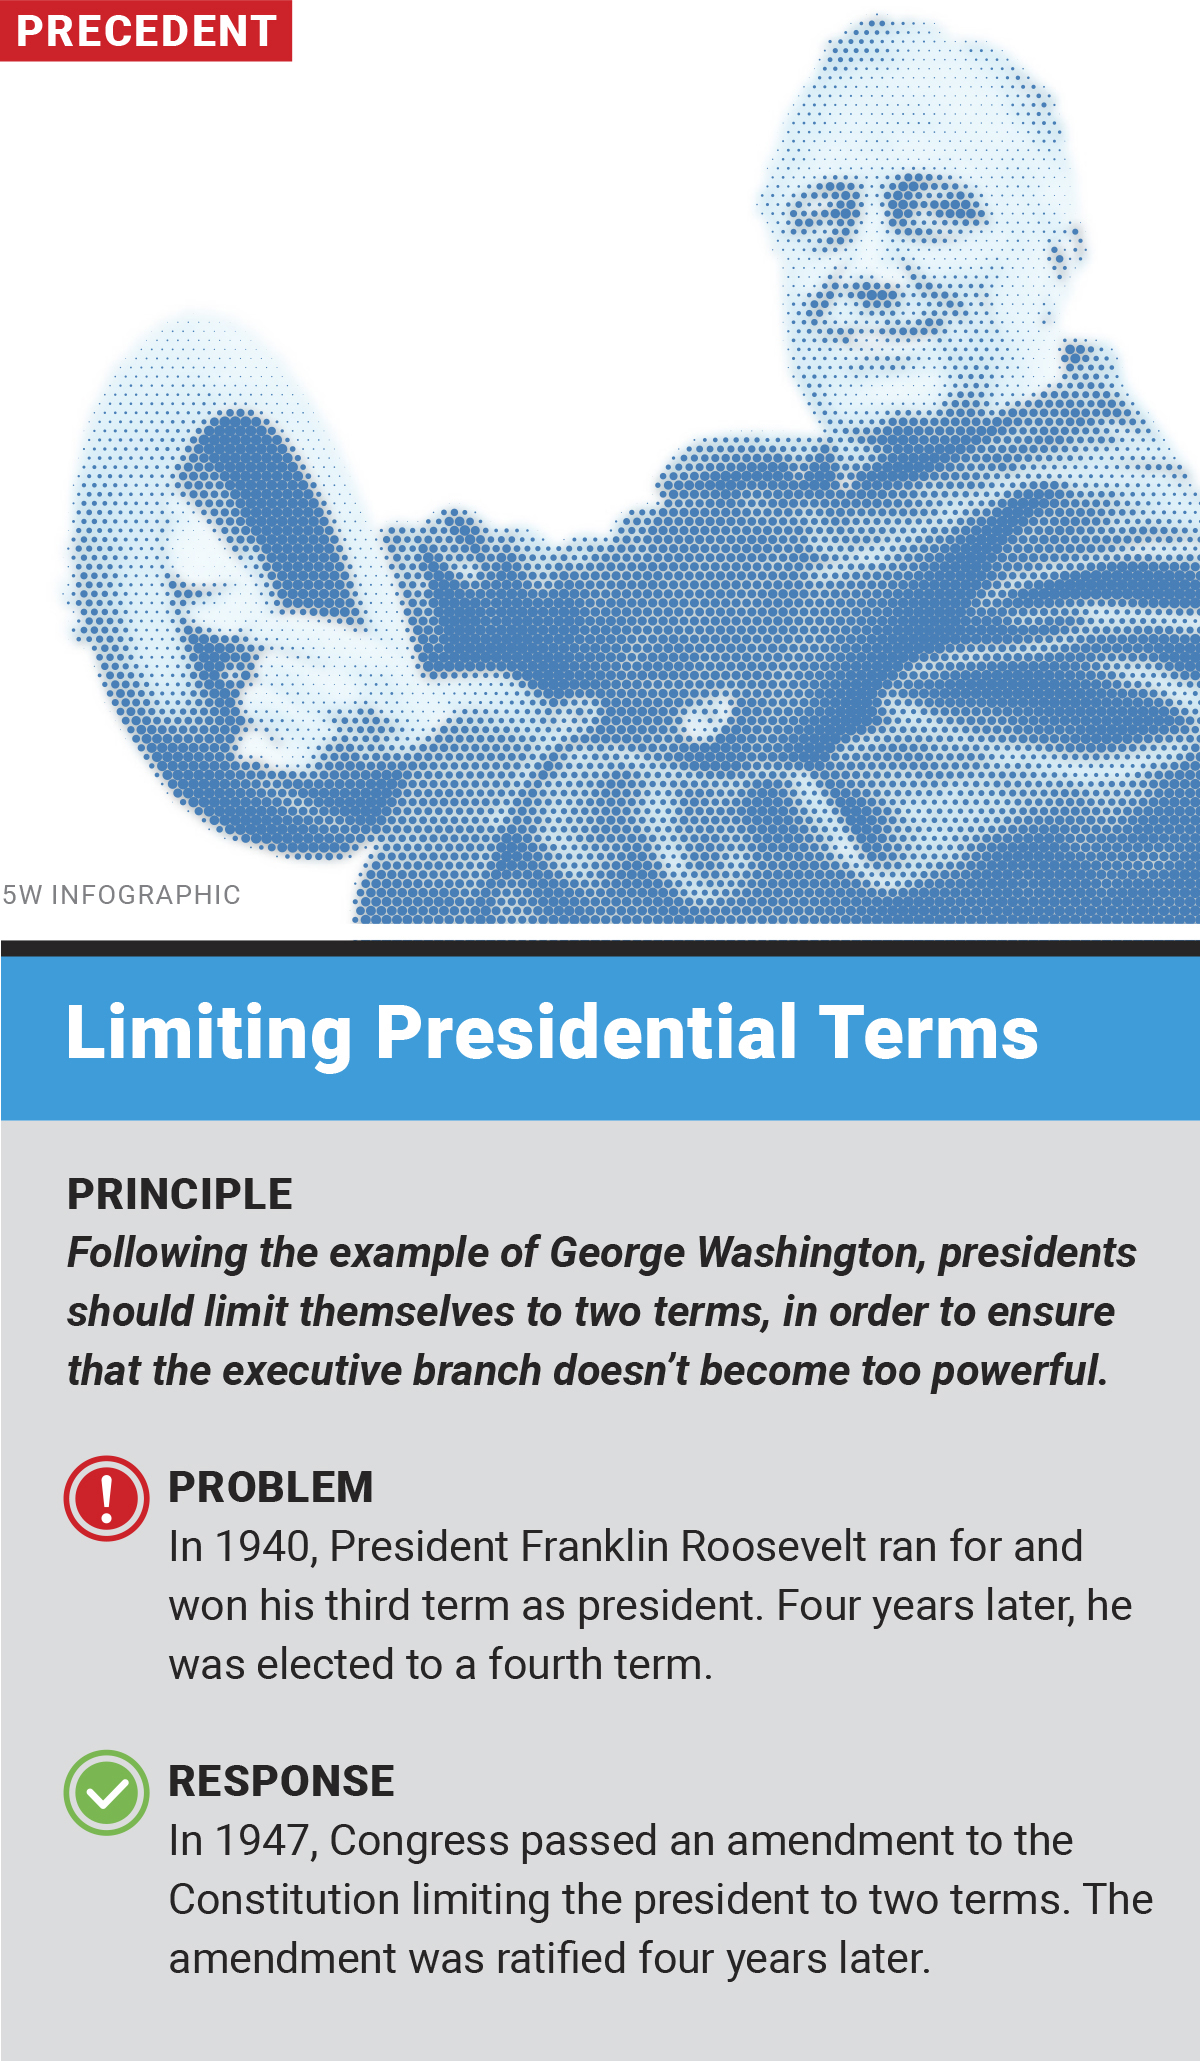 Limiting Presidential Terms graphic